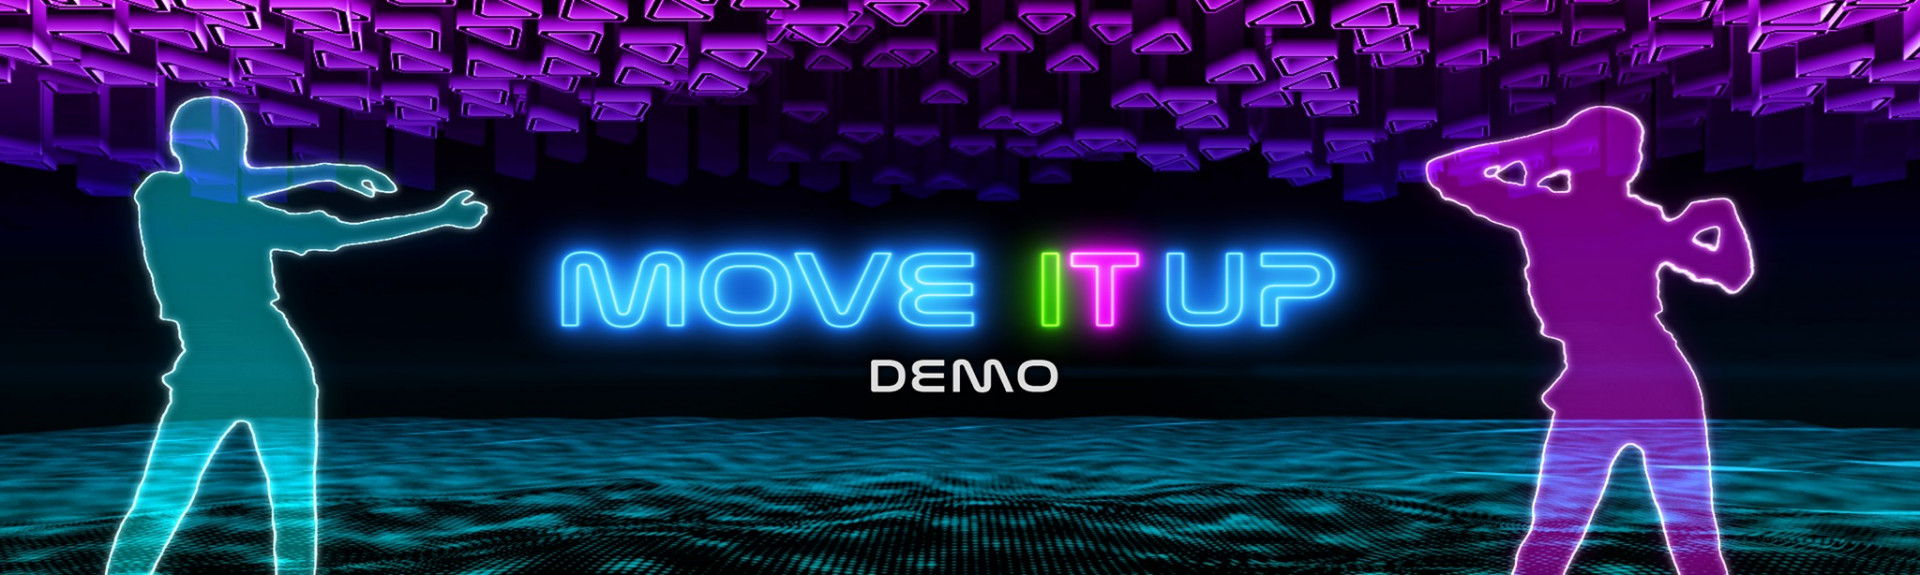 Move it Up Demo